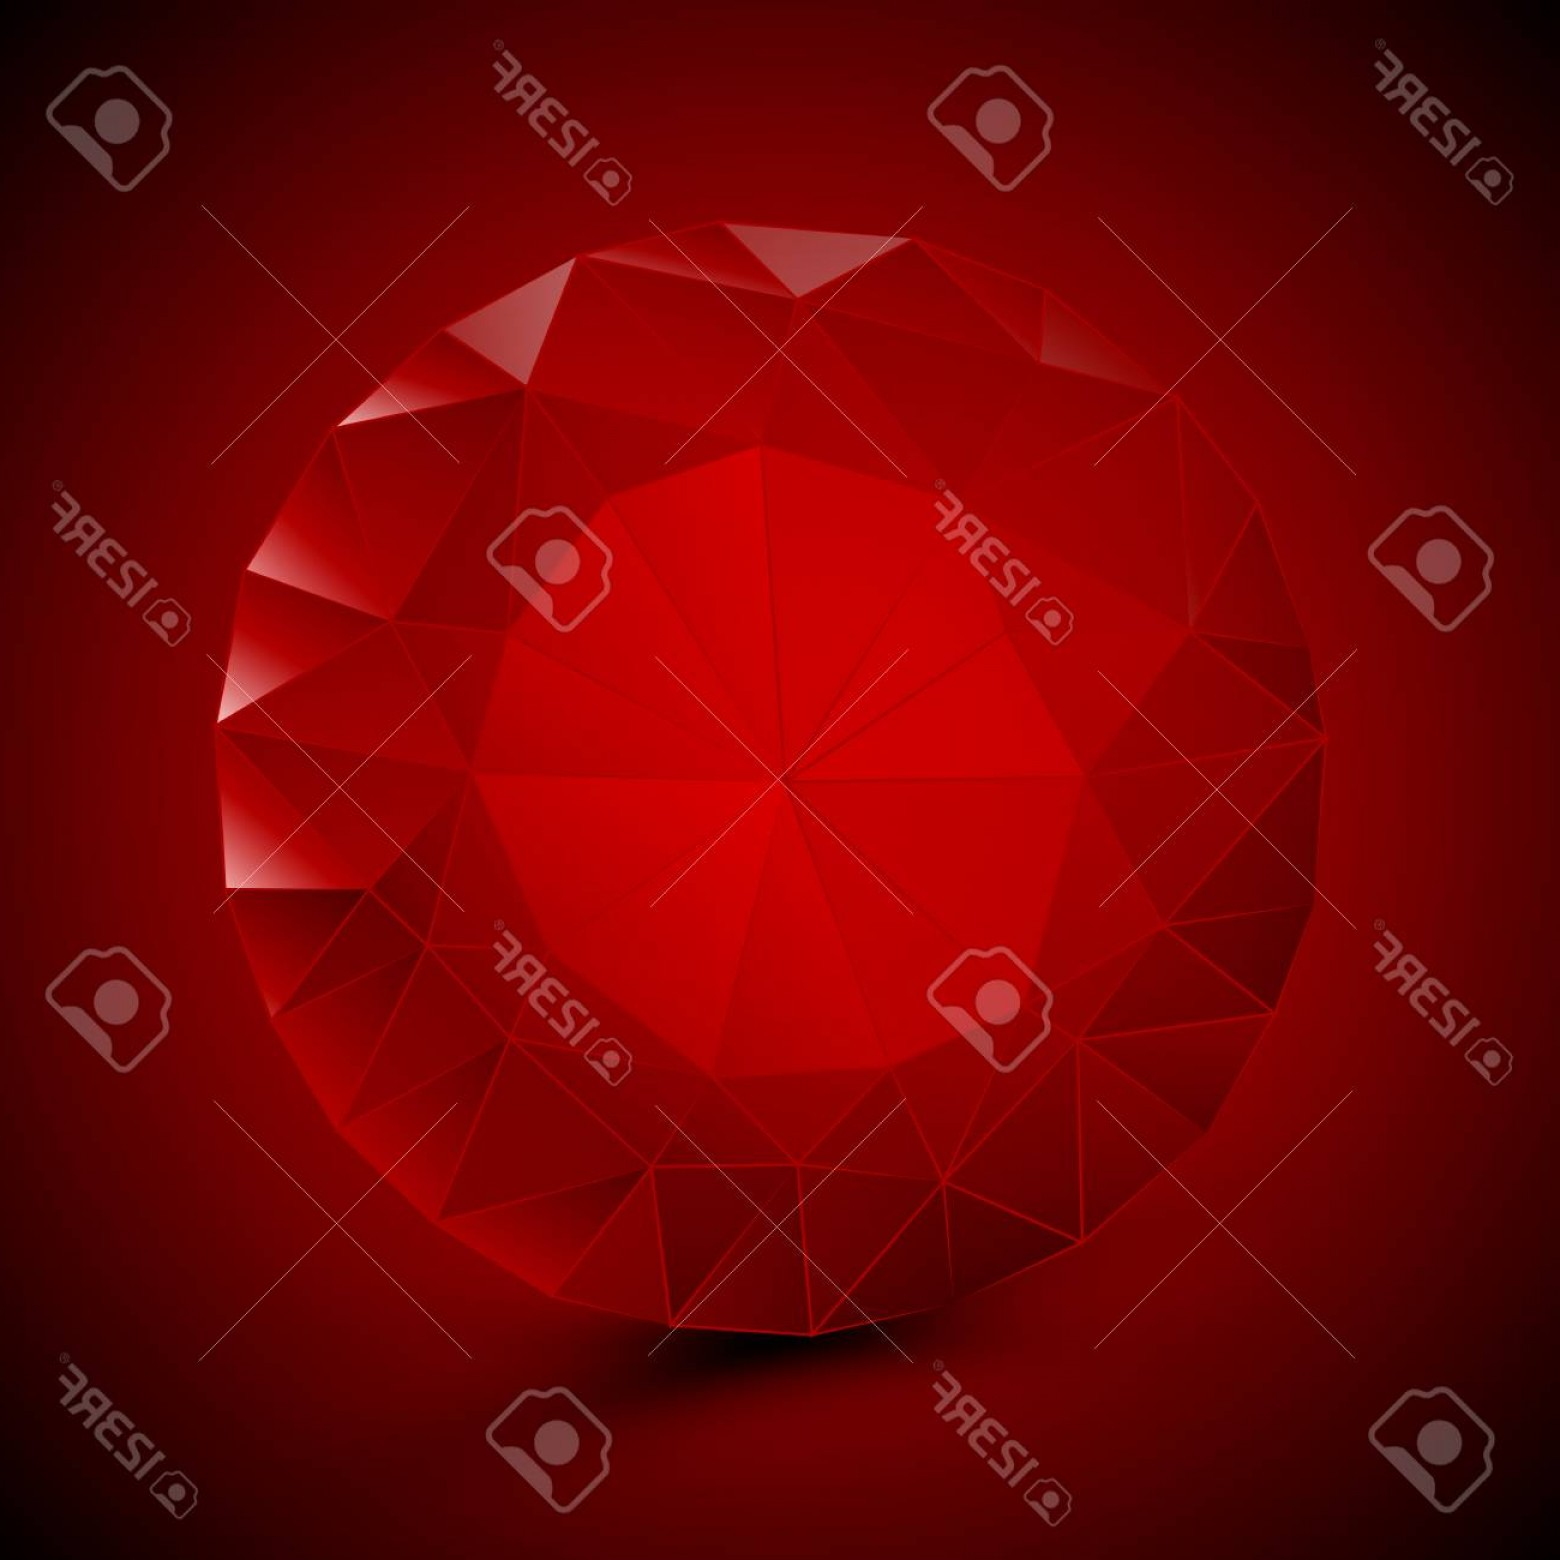 Ruby Royalty Free Vector Graphics: Photostock Vector Round Red Ruby Vector Art Illustration Of A Gem